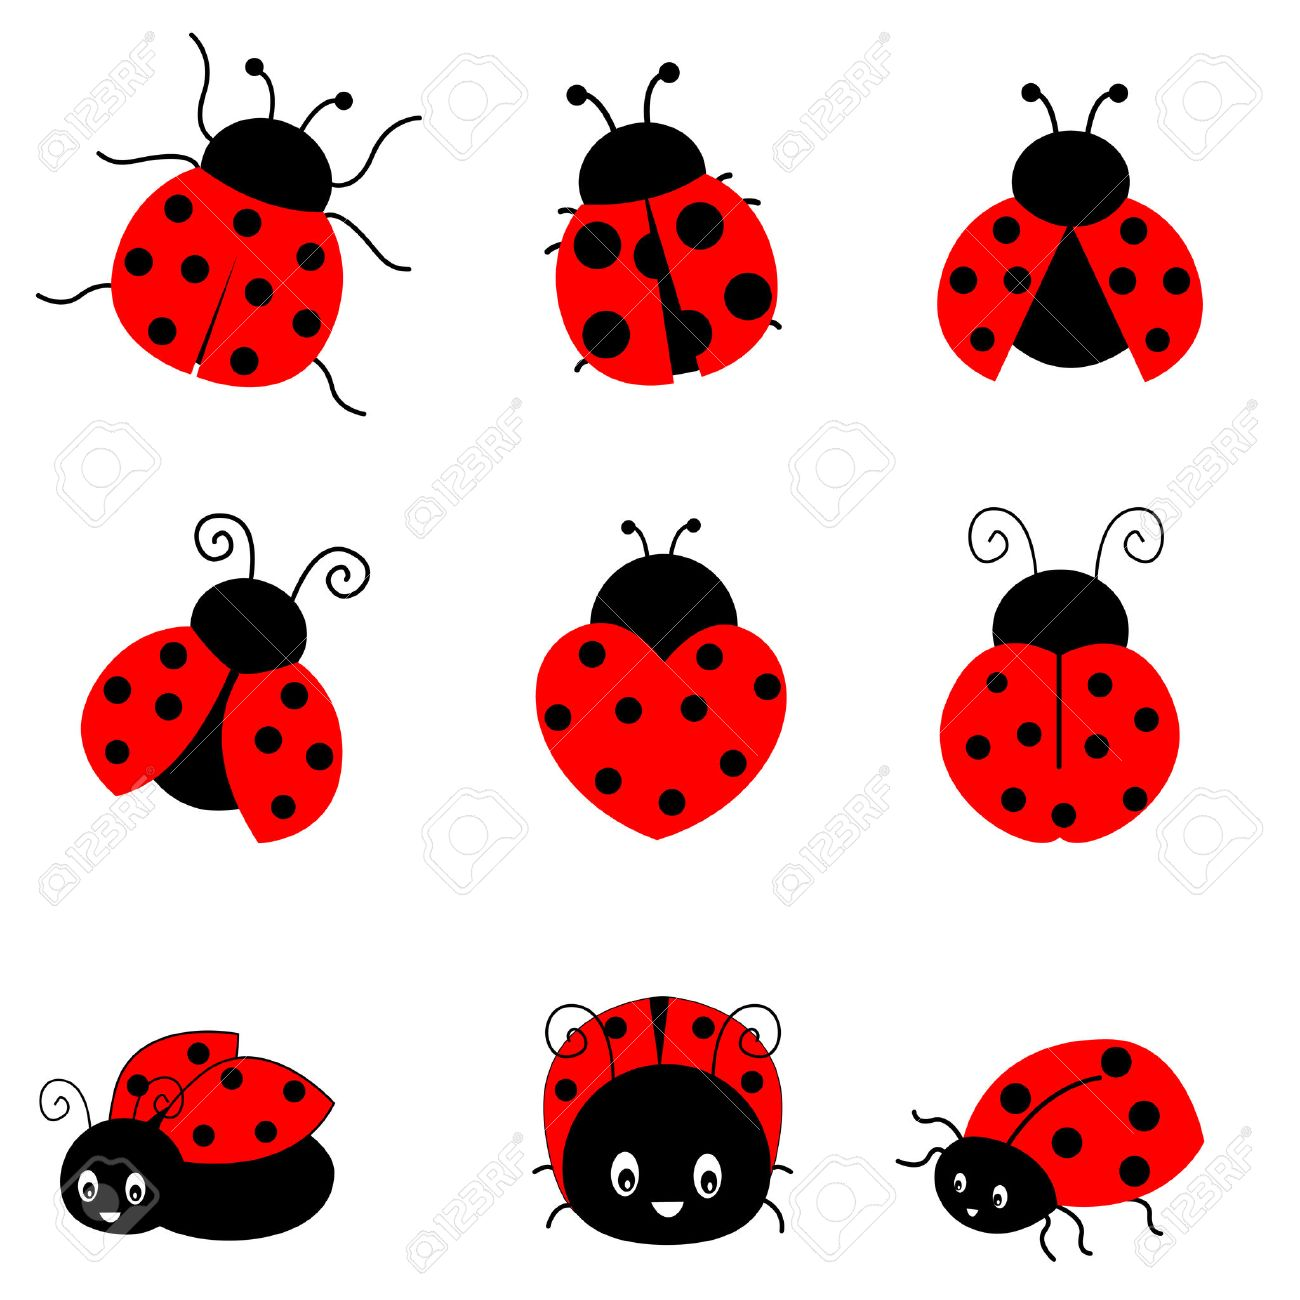 Cute colorful ladybugs clipart collection isolated on white background.